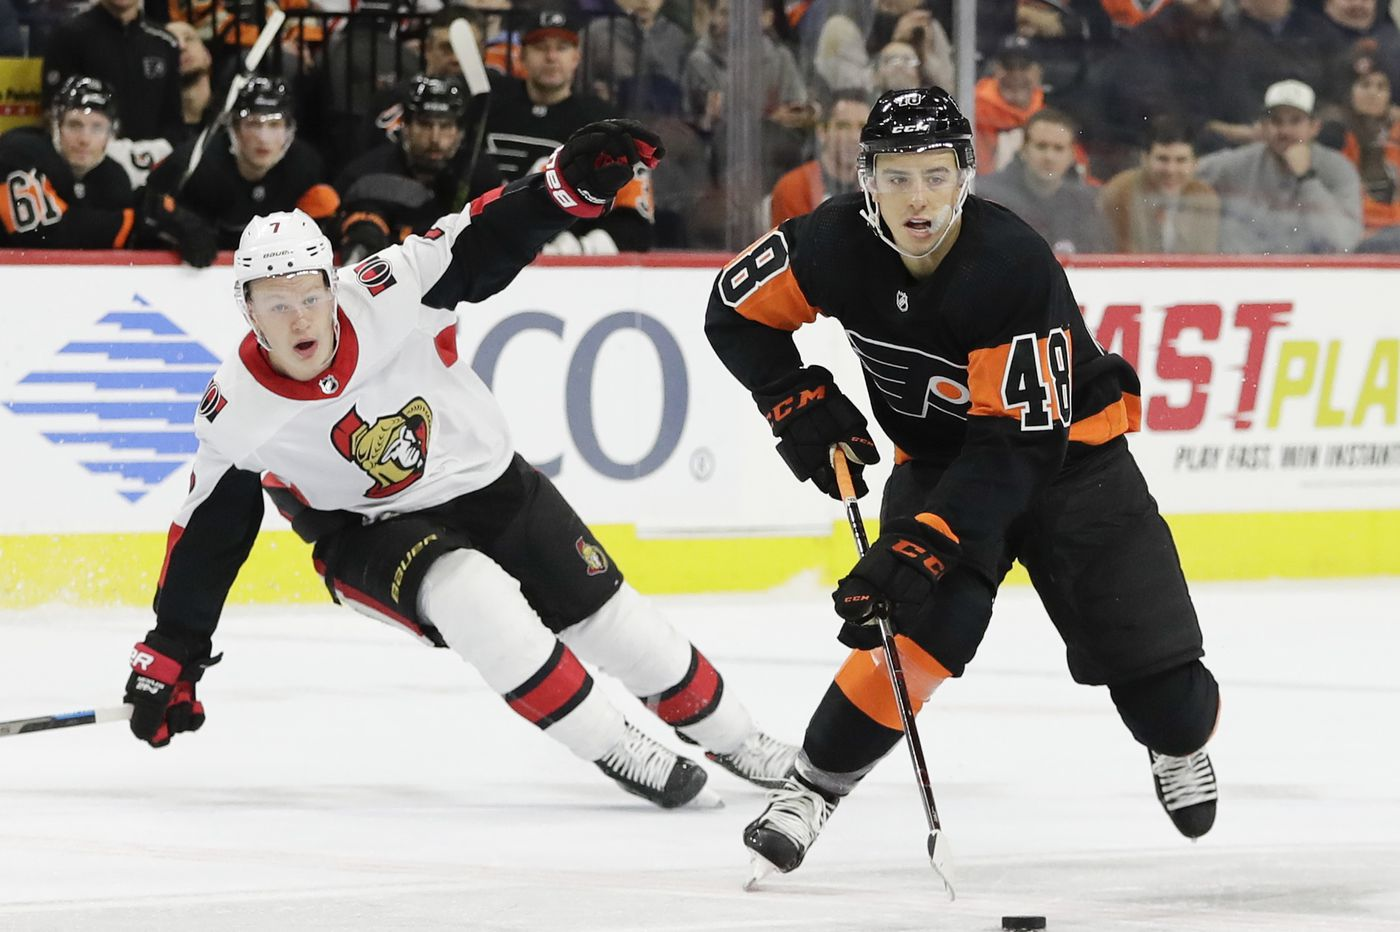 Morgan Frost gets another chance with Flyers; Robert Hagg replaces 'Ghost'